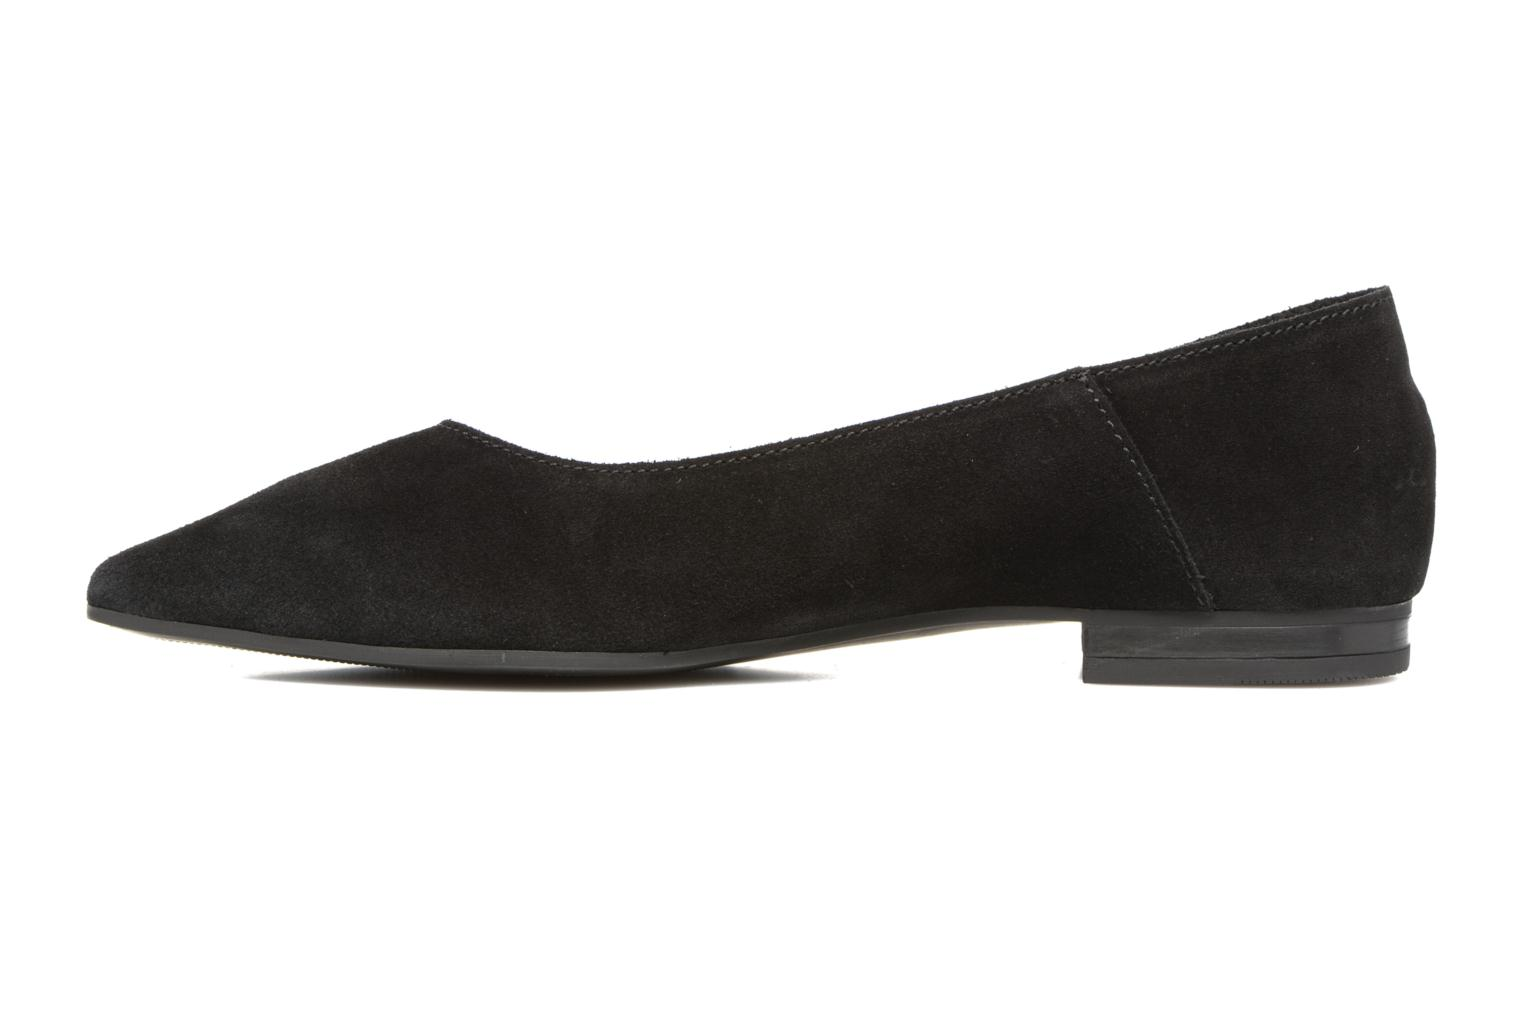 Ballet pumps Pieces Palentina Suede Ballarina Black Black front view